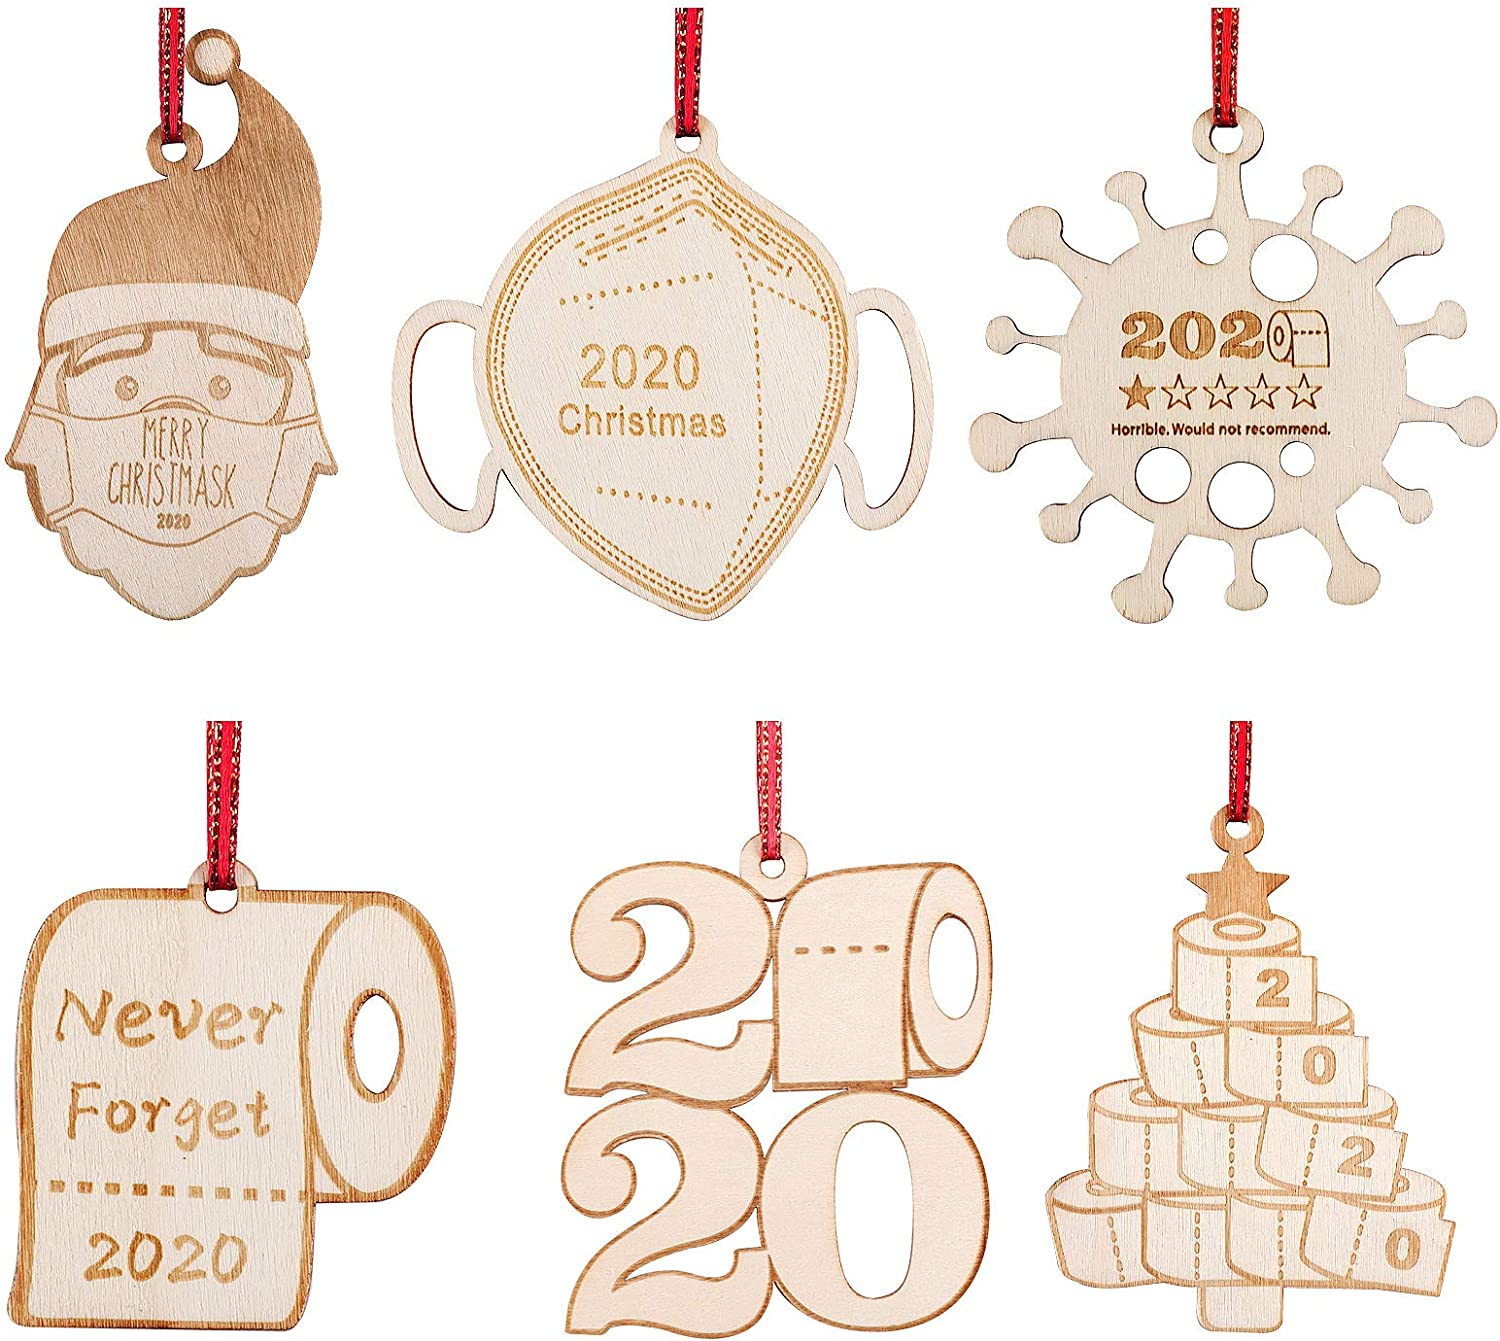 Tetor 2020 Christmas Ornament Quarantine Personalized Engraved Rustic Wood Hanging Decorating Toilet Paper Ornament 2020 Keepsake for Family Christmas Tree Decorations (Style 1)